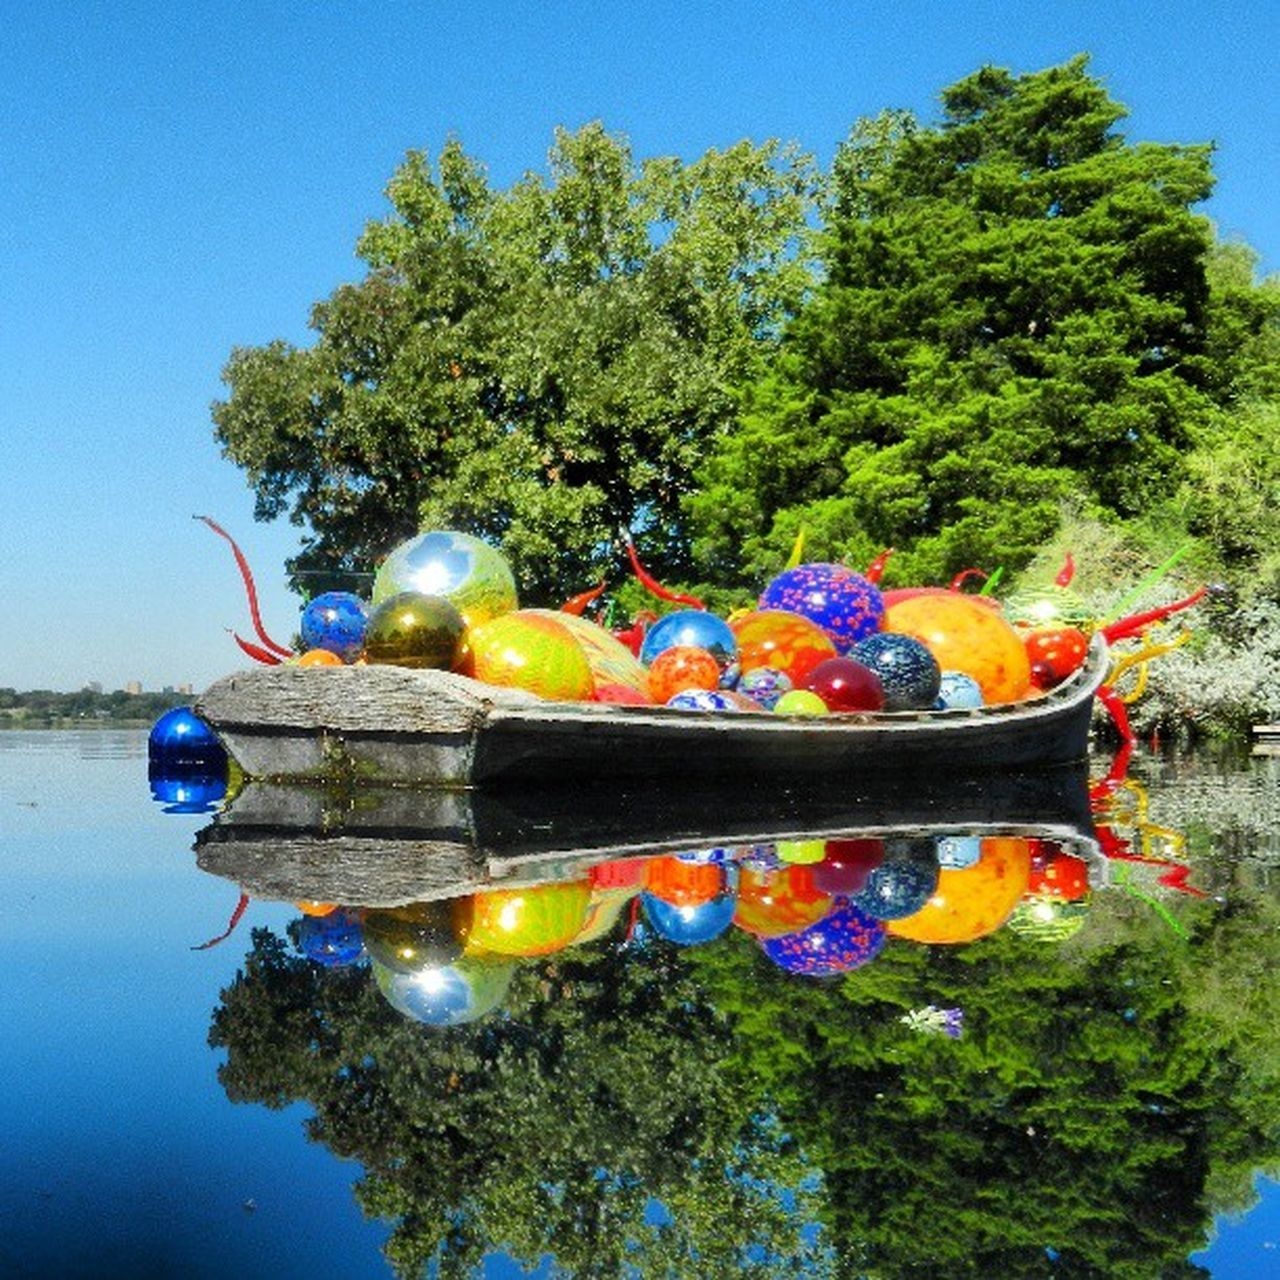 An old shot I took of the Chihuly exhibit at the Dallas Arboretum. Inspireseamus Global_hotshotz _the_vent_